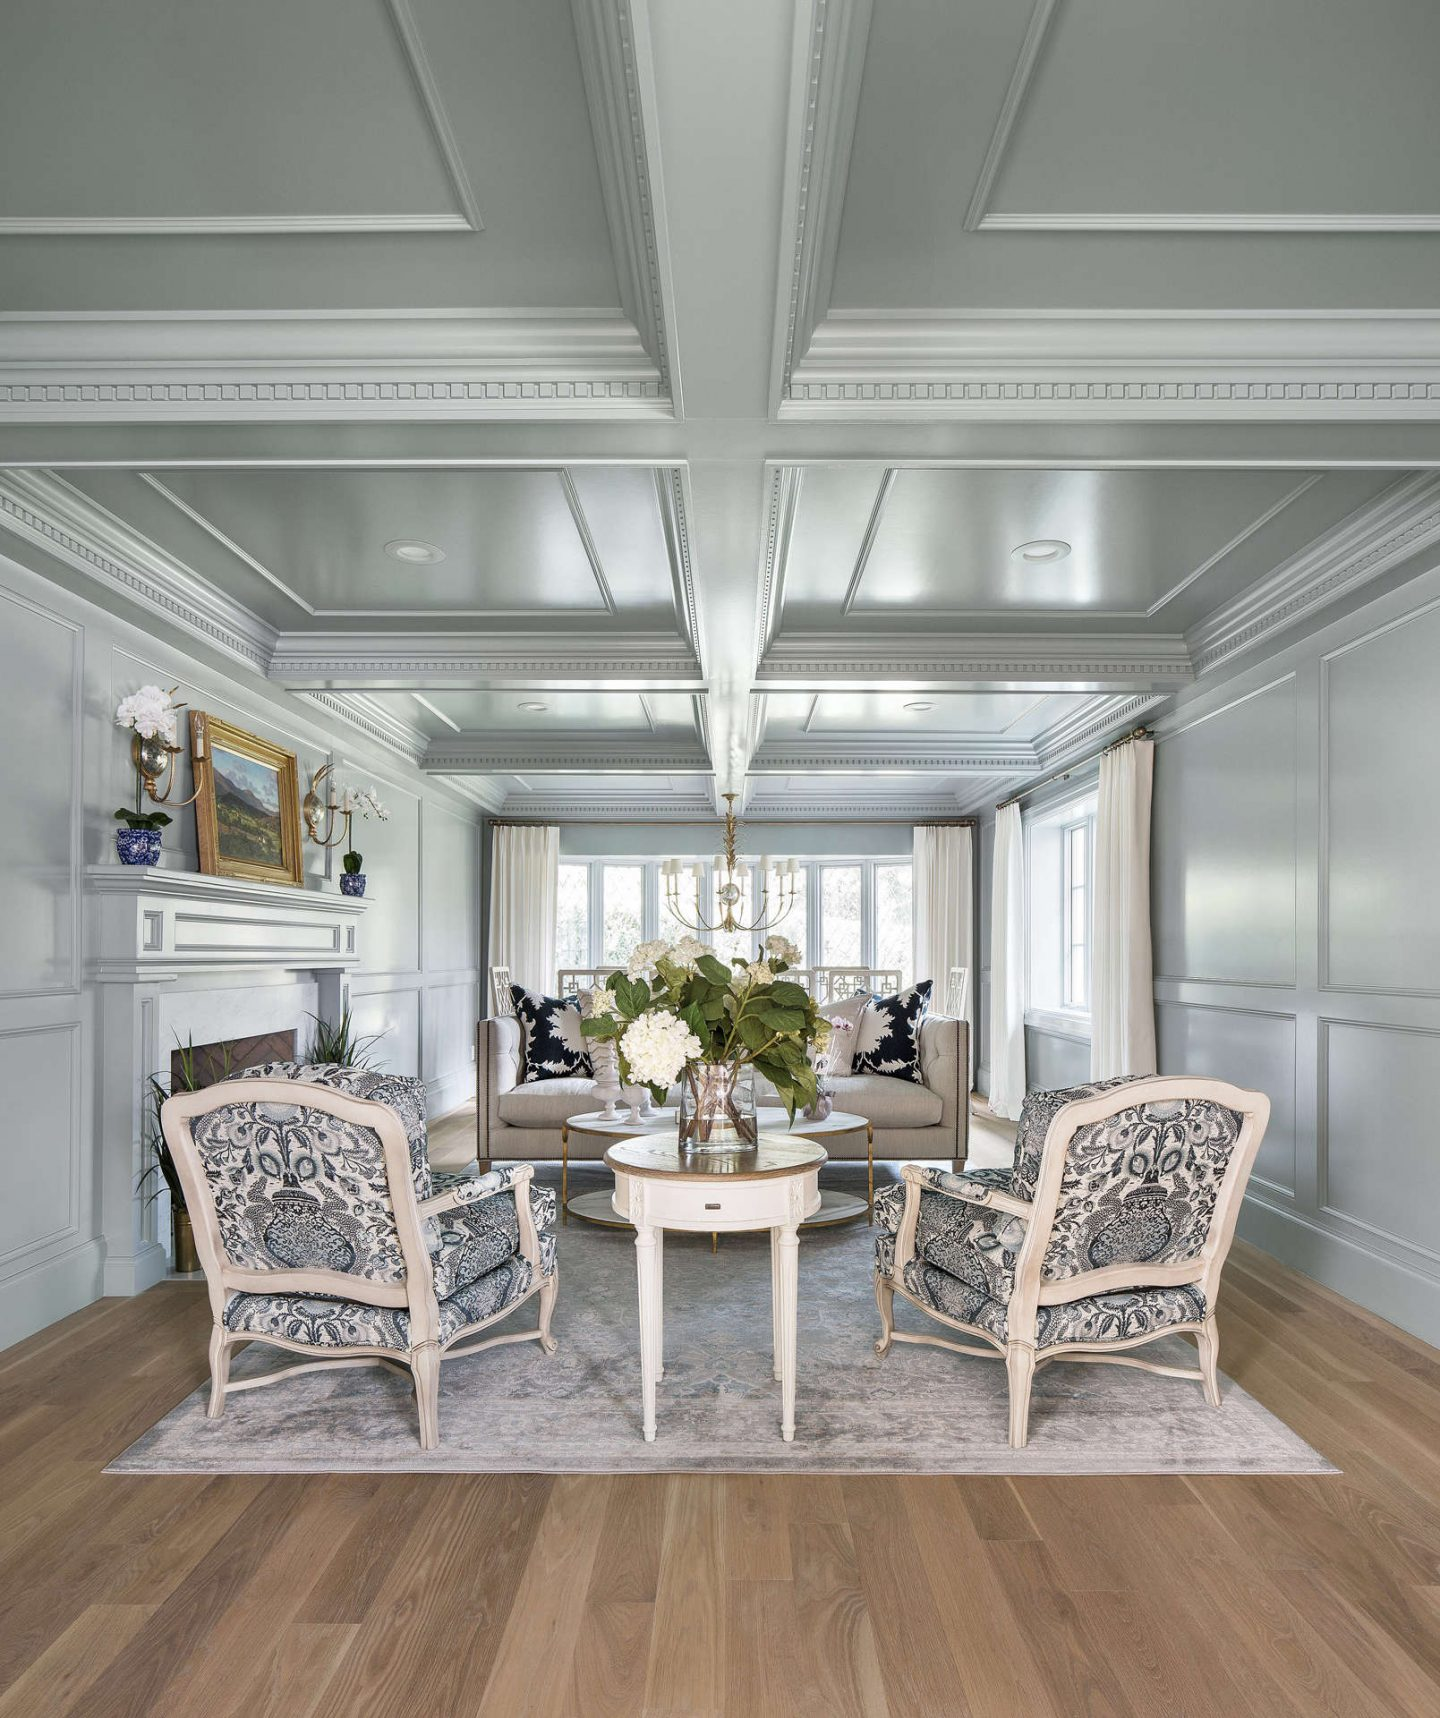 Serene and ethereal aqua blue gray painted paneled walls and coffered ceiling in a traditional living room in a Tudor home. Come explore these timeless design ideas...hello lovely indeed. #thefoxgroup #livingroom #interiordesign